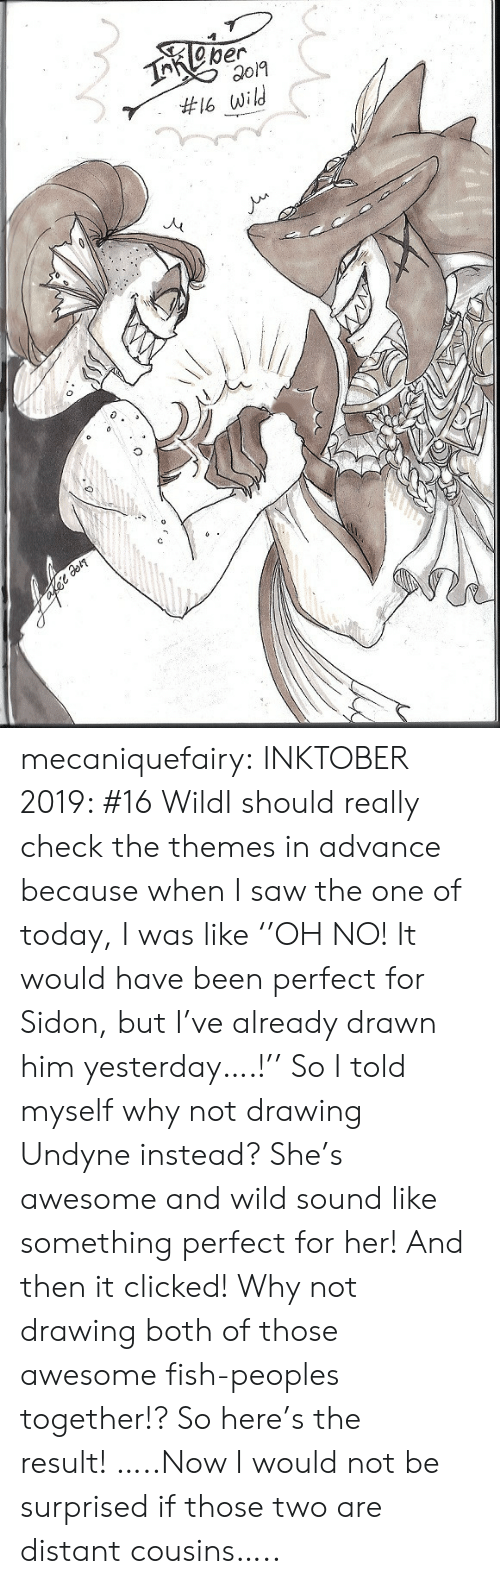 distant: TReper  #16 wild mecaniquefairy:  INKTOBER 2019: #16 WildI should really check the themes in advance because when I saw the one of today, I was like ''OH NO! It would have been perfect for Sidon, but I've already drawn him yesterday….!'' So I told myself why not drawing Undyne instead? She's awesome and wild sound like something perfect for her! And then it clicked! Why not drawing both of those awesome fish-peoples together!? So here's the result!…..Now I would not be surprised if those two are distant cousins…..